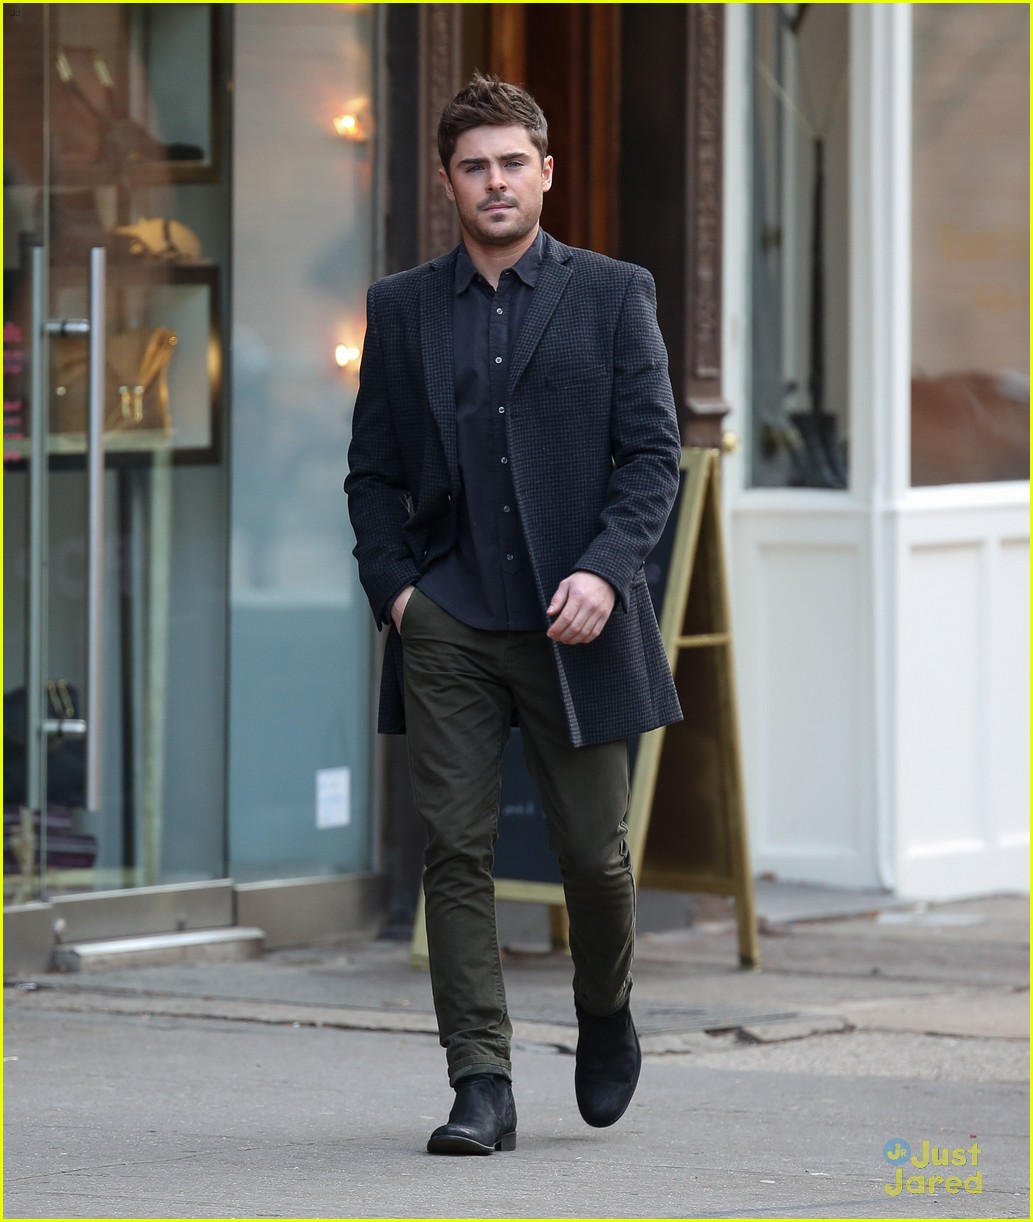 zac efron dating filming 01